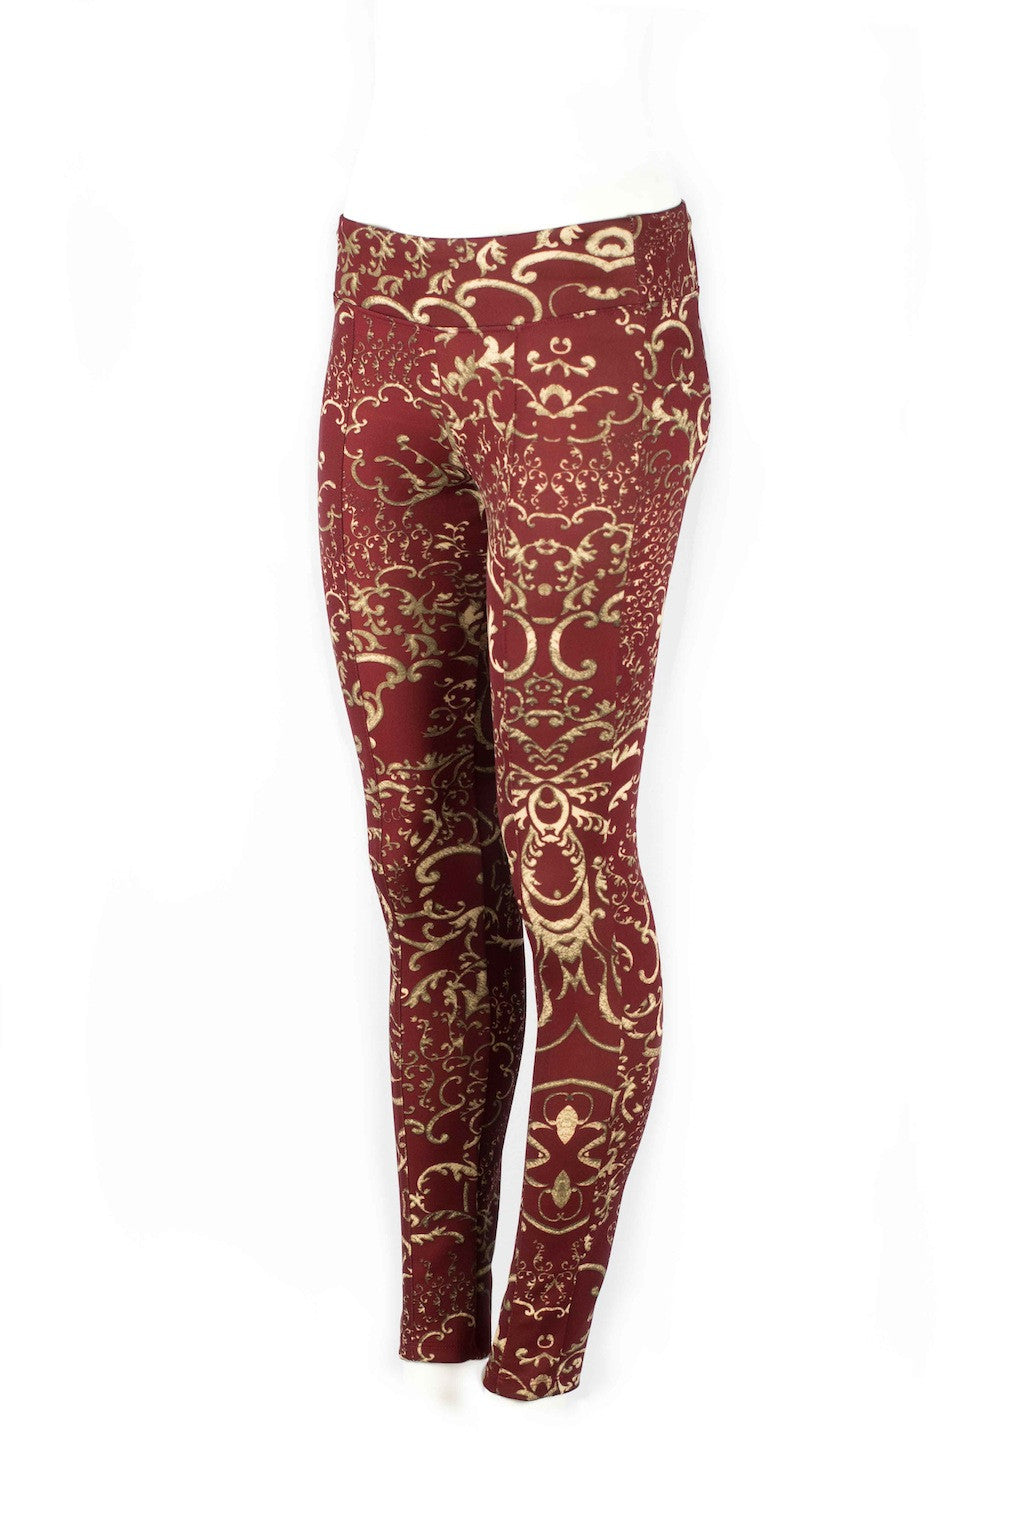 Mackenzie Golden Arabesque Fitted Scuba Pants - ANA MARIA KIM  - 7